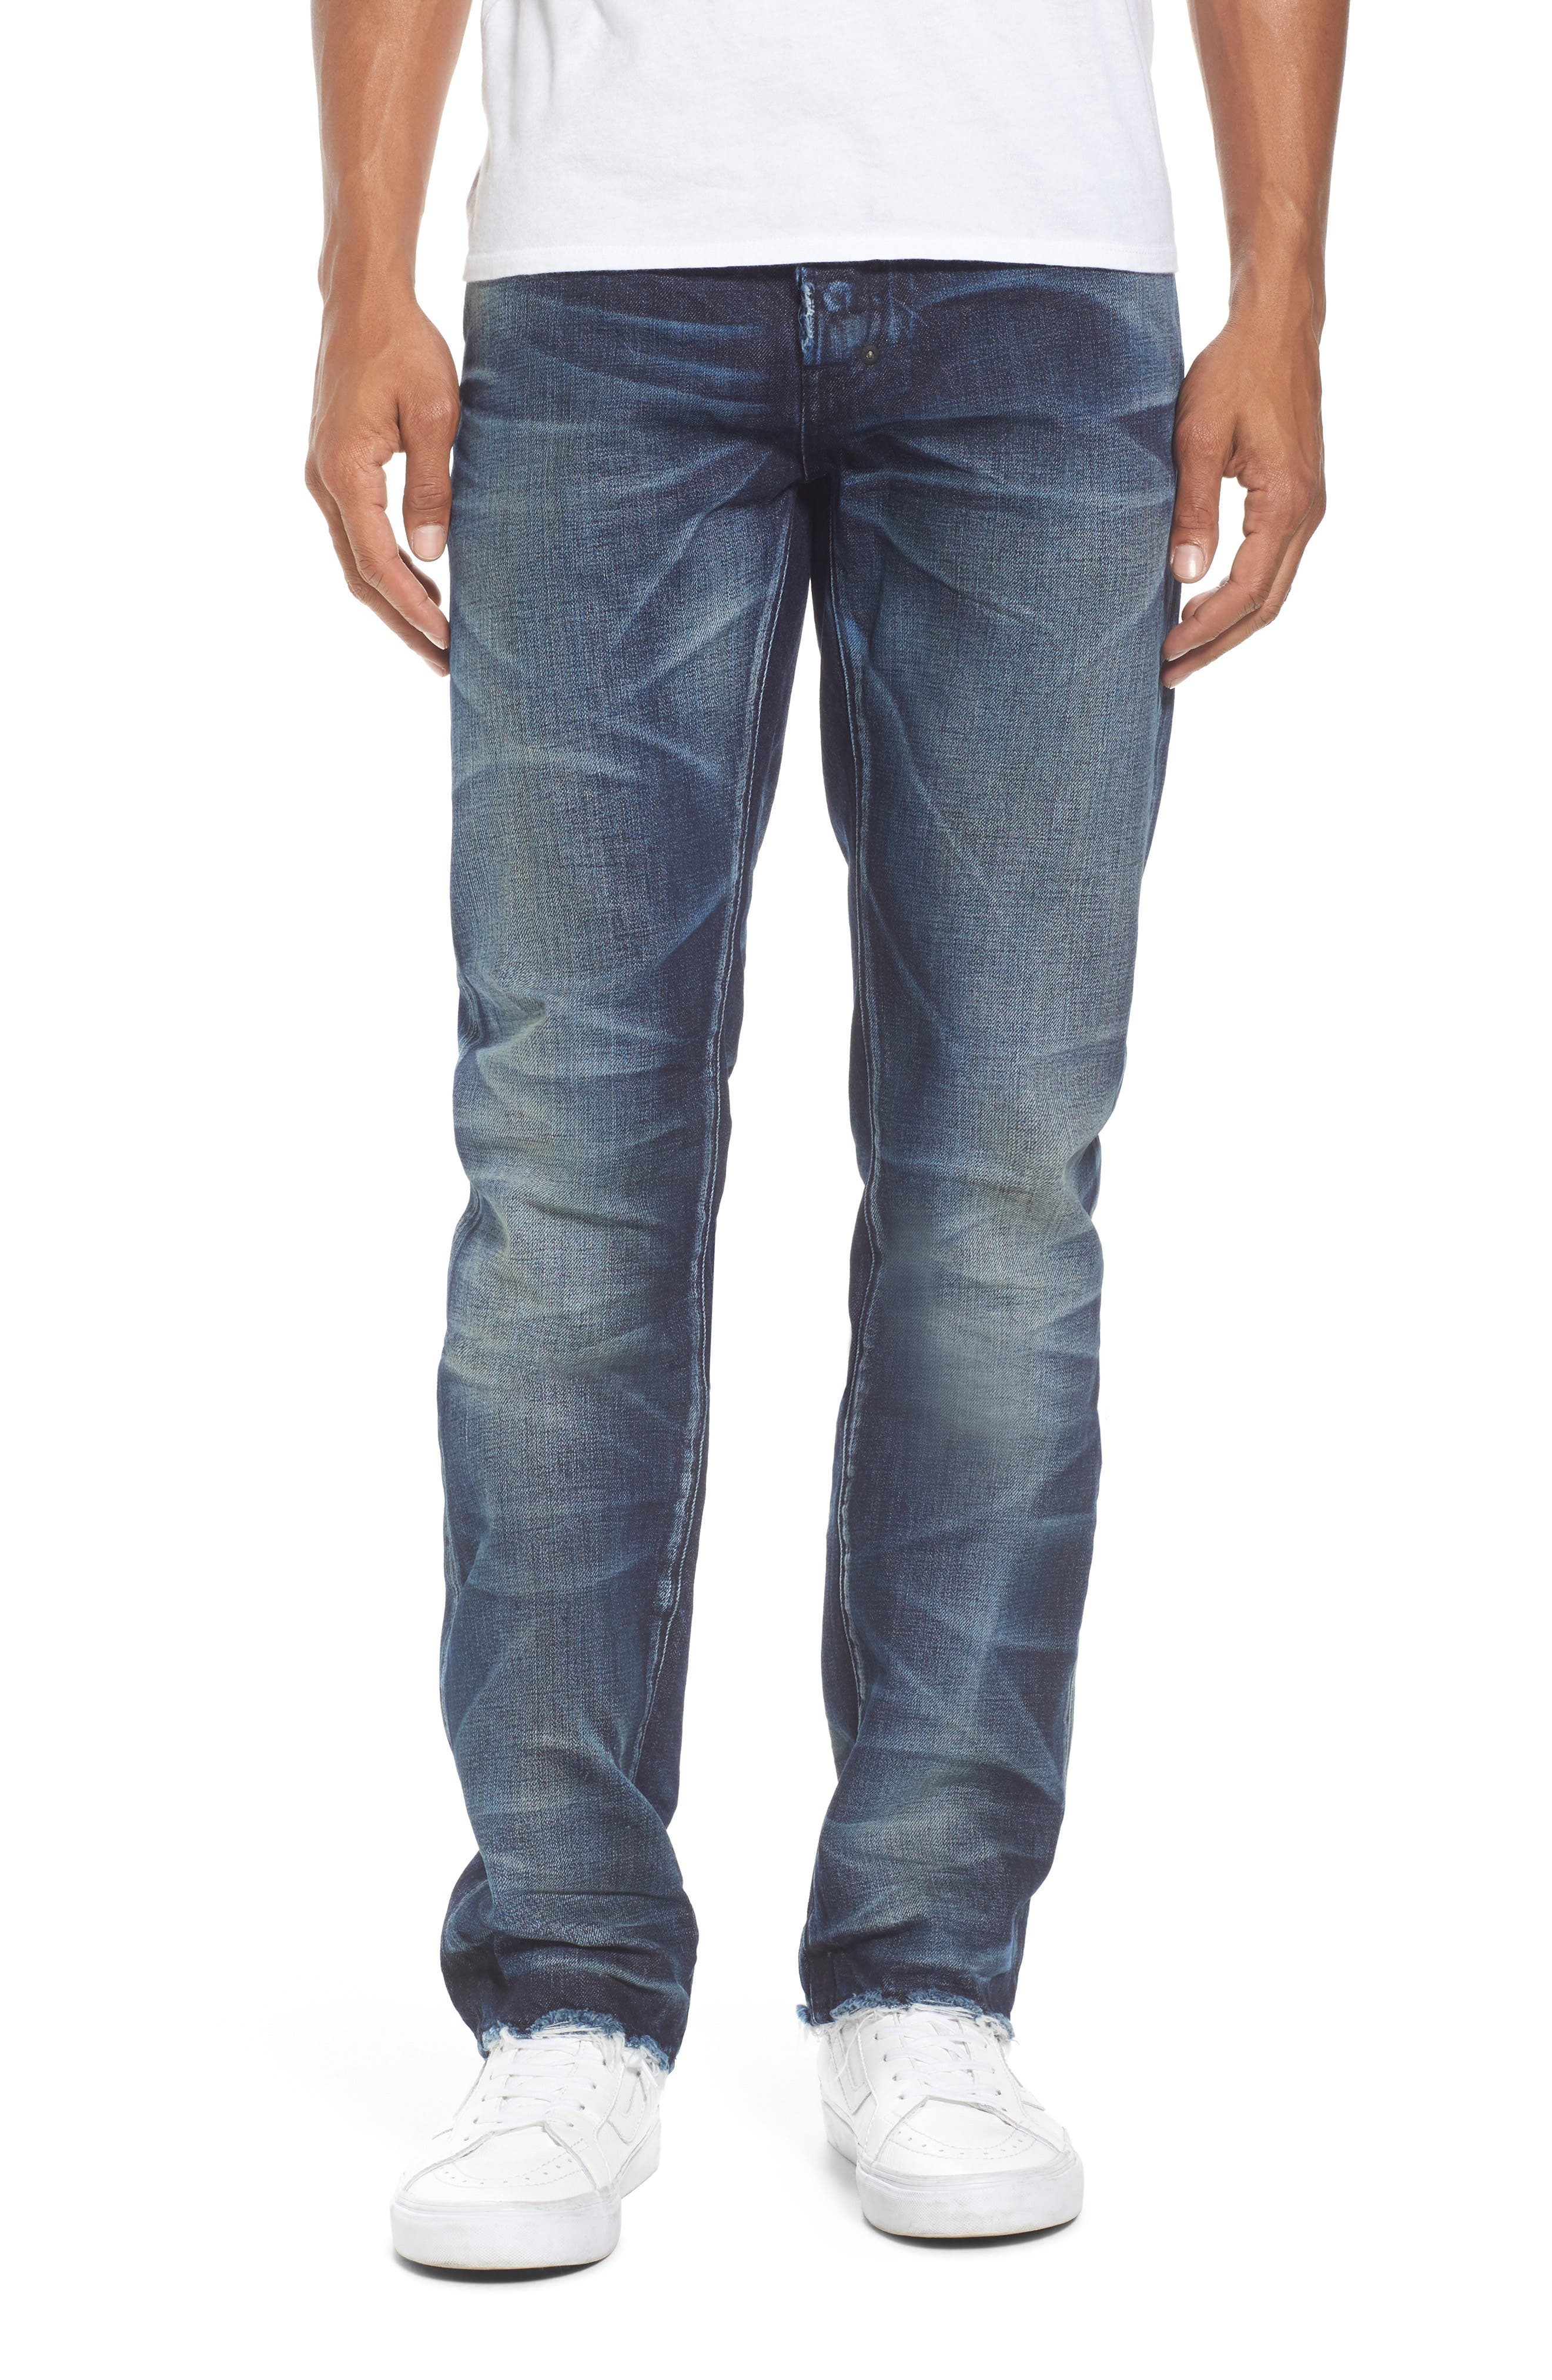 Alternate Image 1 Selected - PRPS Demon Slim Straight Jeans